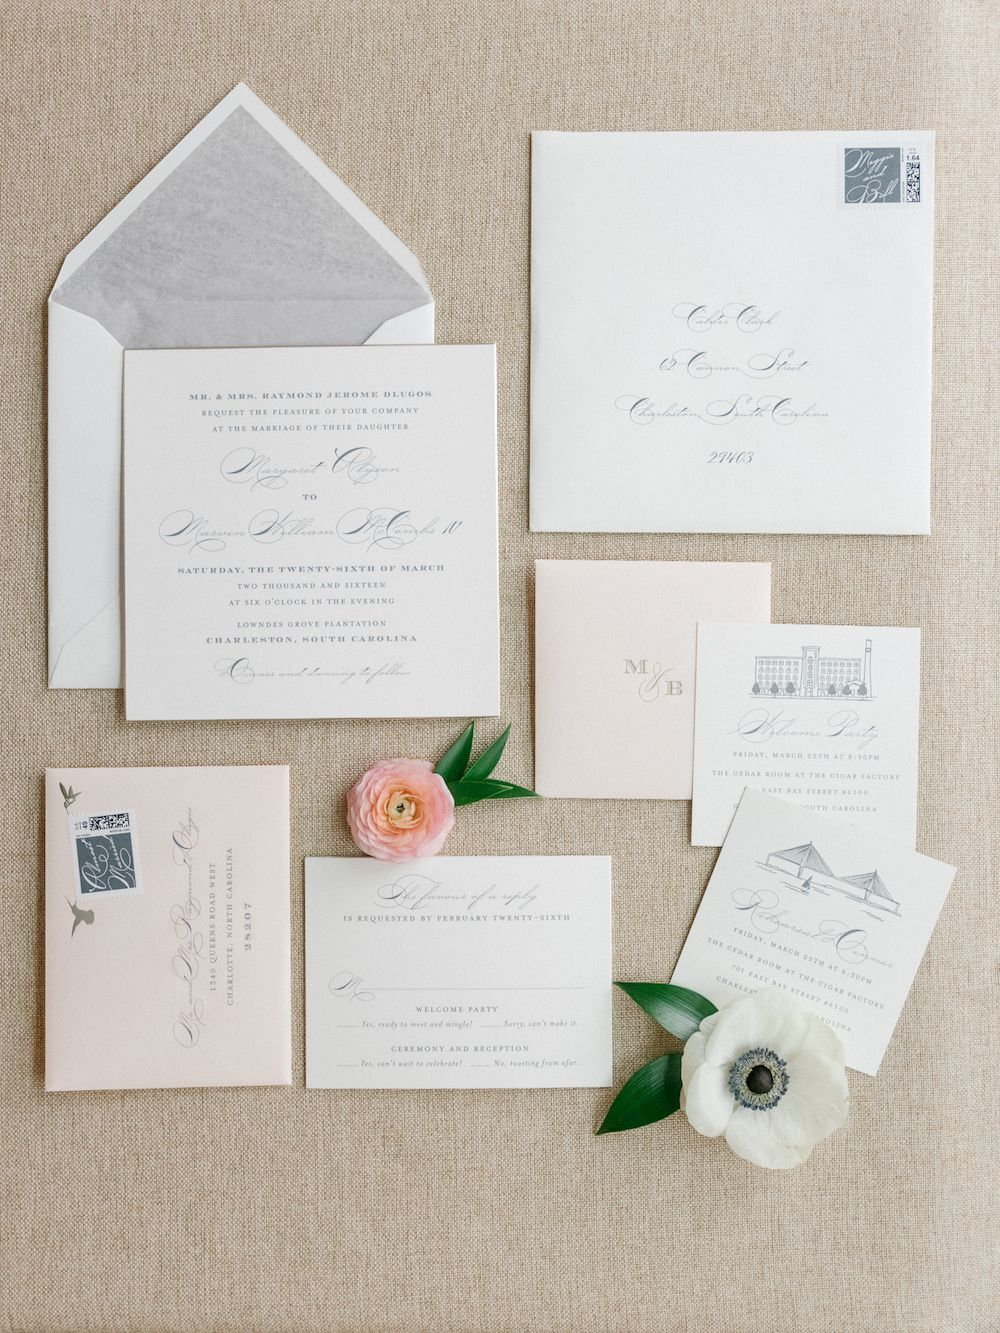 Meggie And Bill S Stunning Southern Stationery Suite Featured Blush